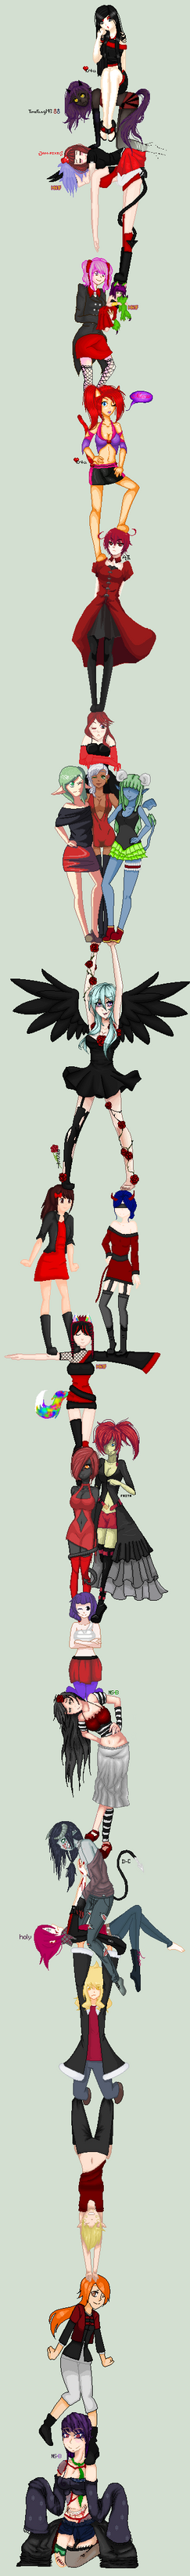 .:COLLAB:DONE:. A touch of Black and Red 2nd Power by doris4u